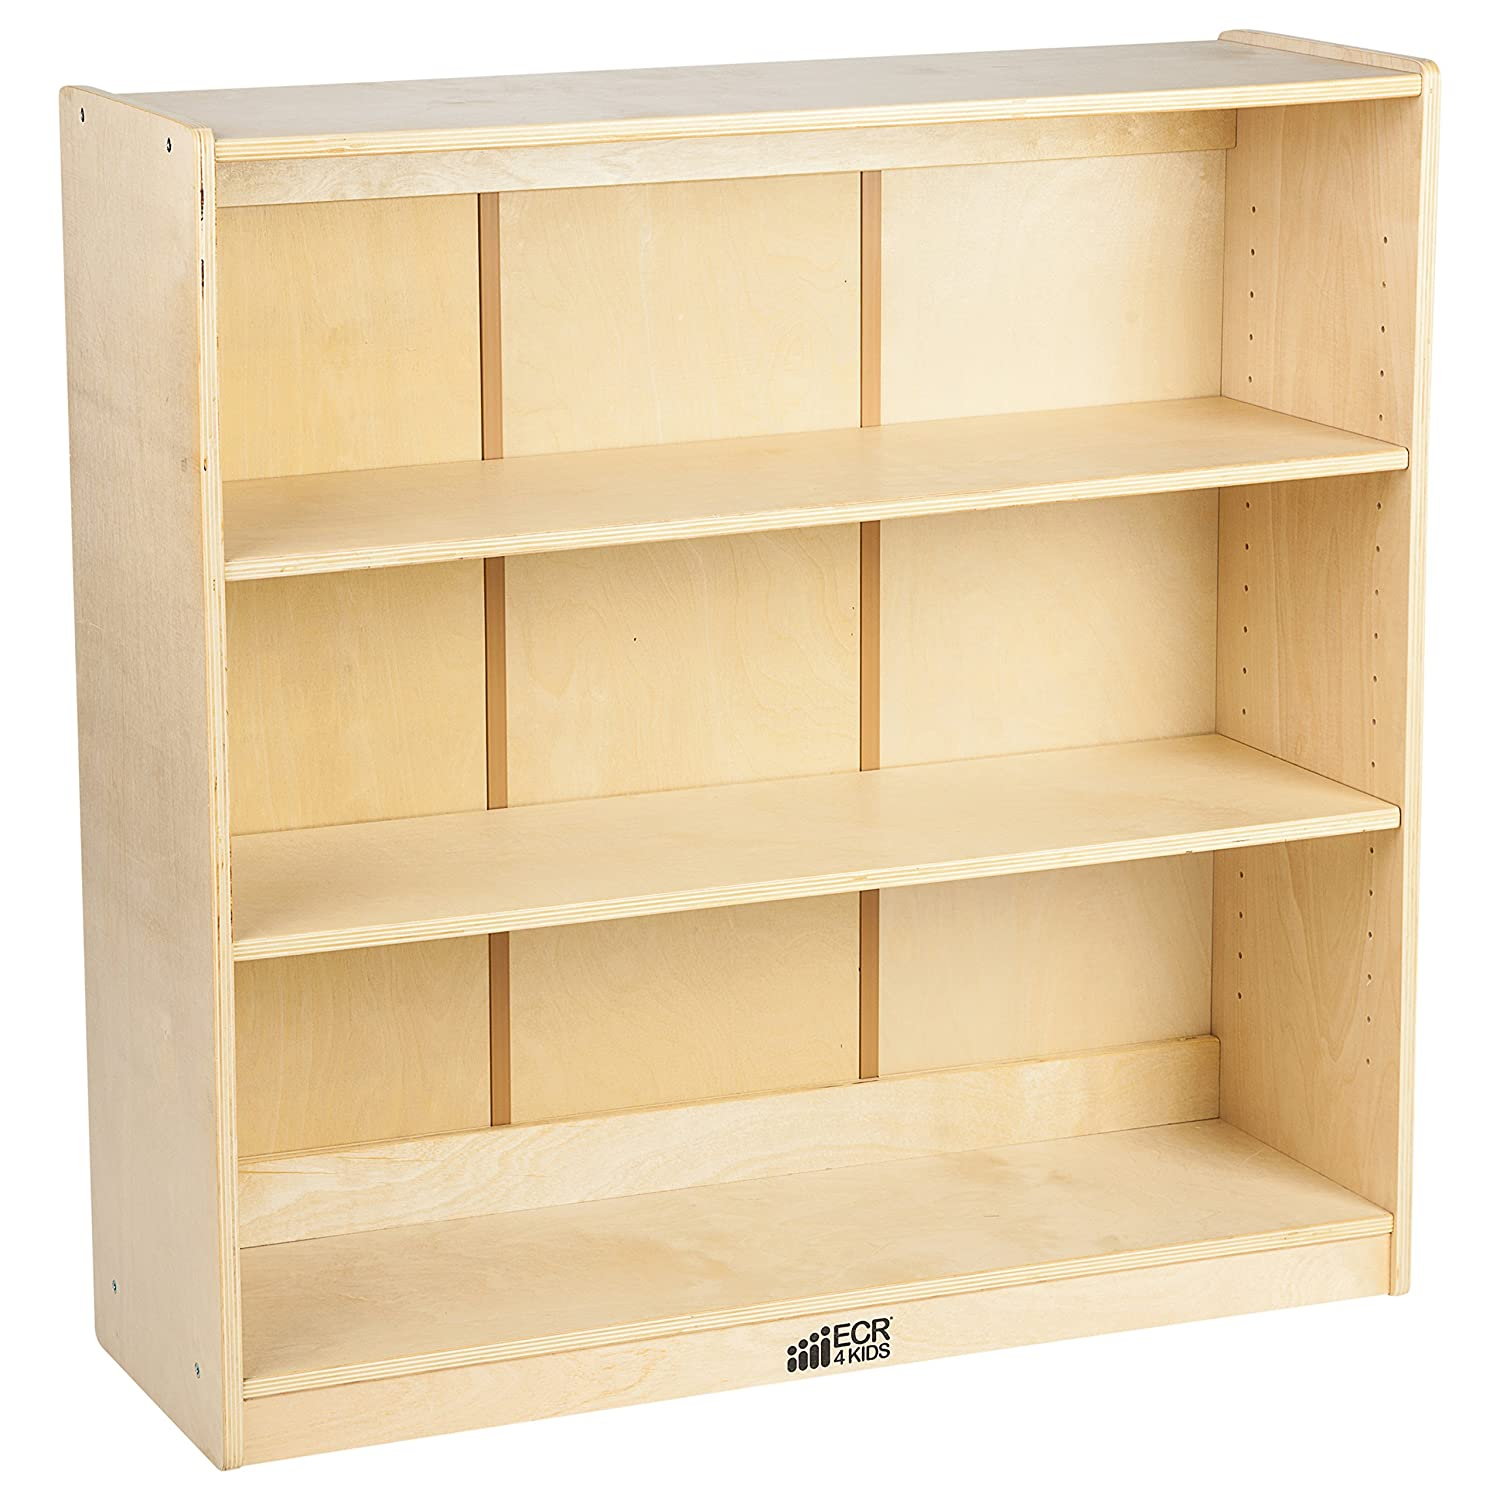 "ECR4Kids Birch Bookcase with Adjustable Shelves, Wood Book Shelf Organizer for Kids, 3 Shelf, Natural, 36"" H"